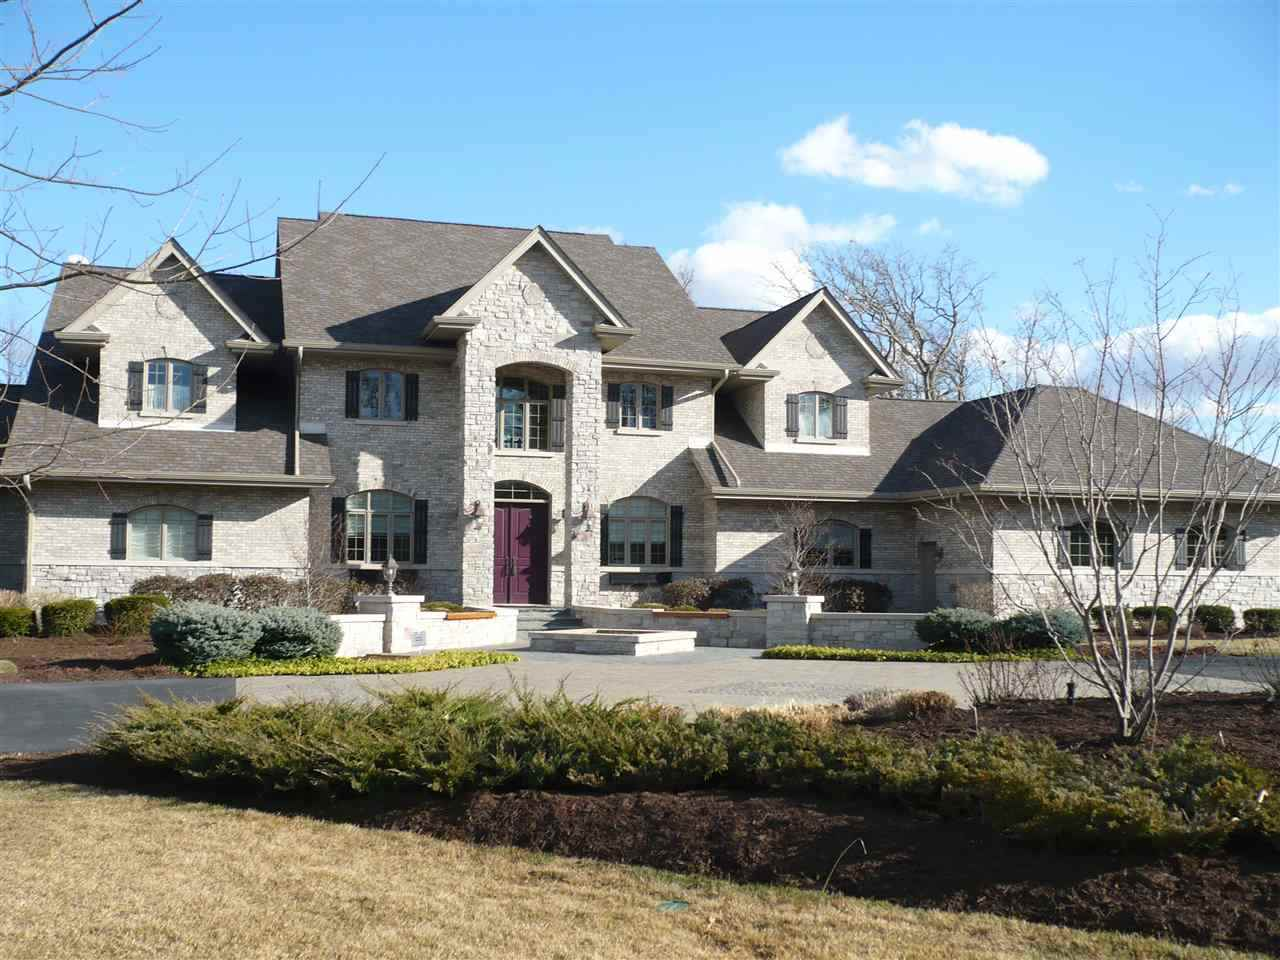 Property for sale at 5140 Smokethorn, BELVIDERE,  IL 61008